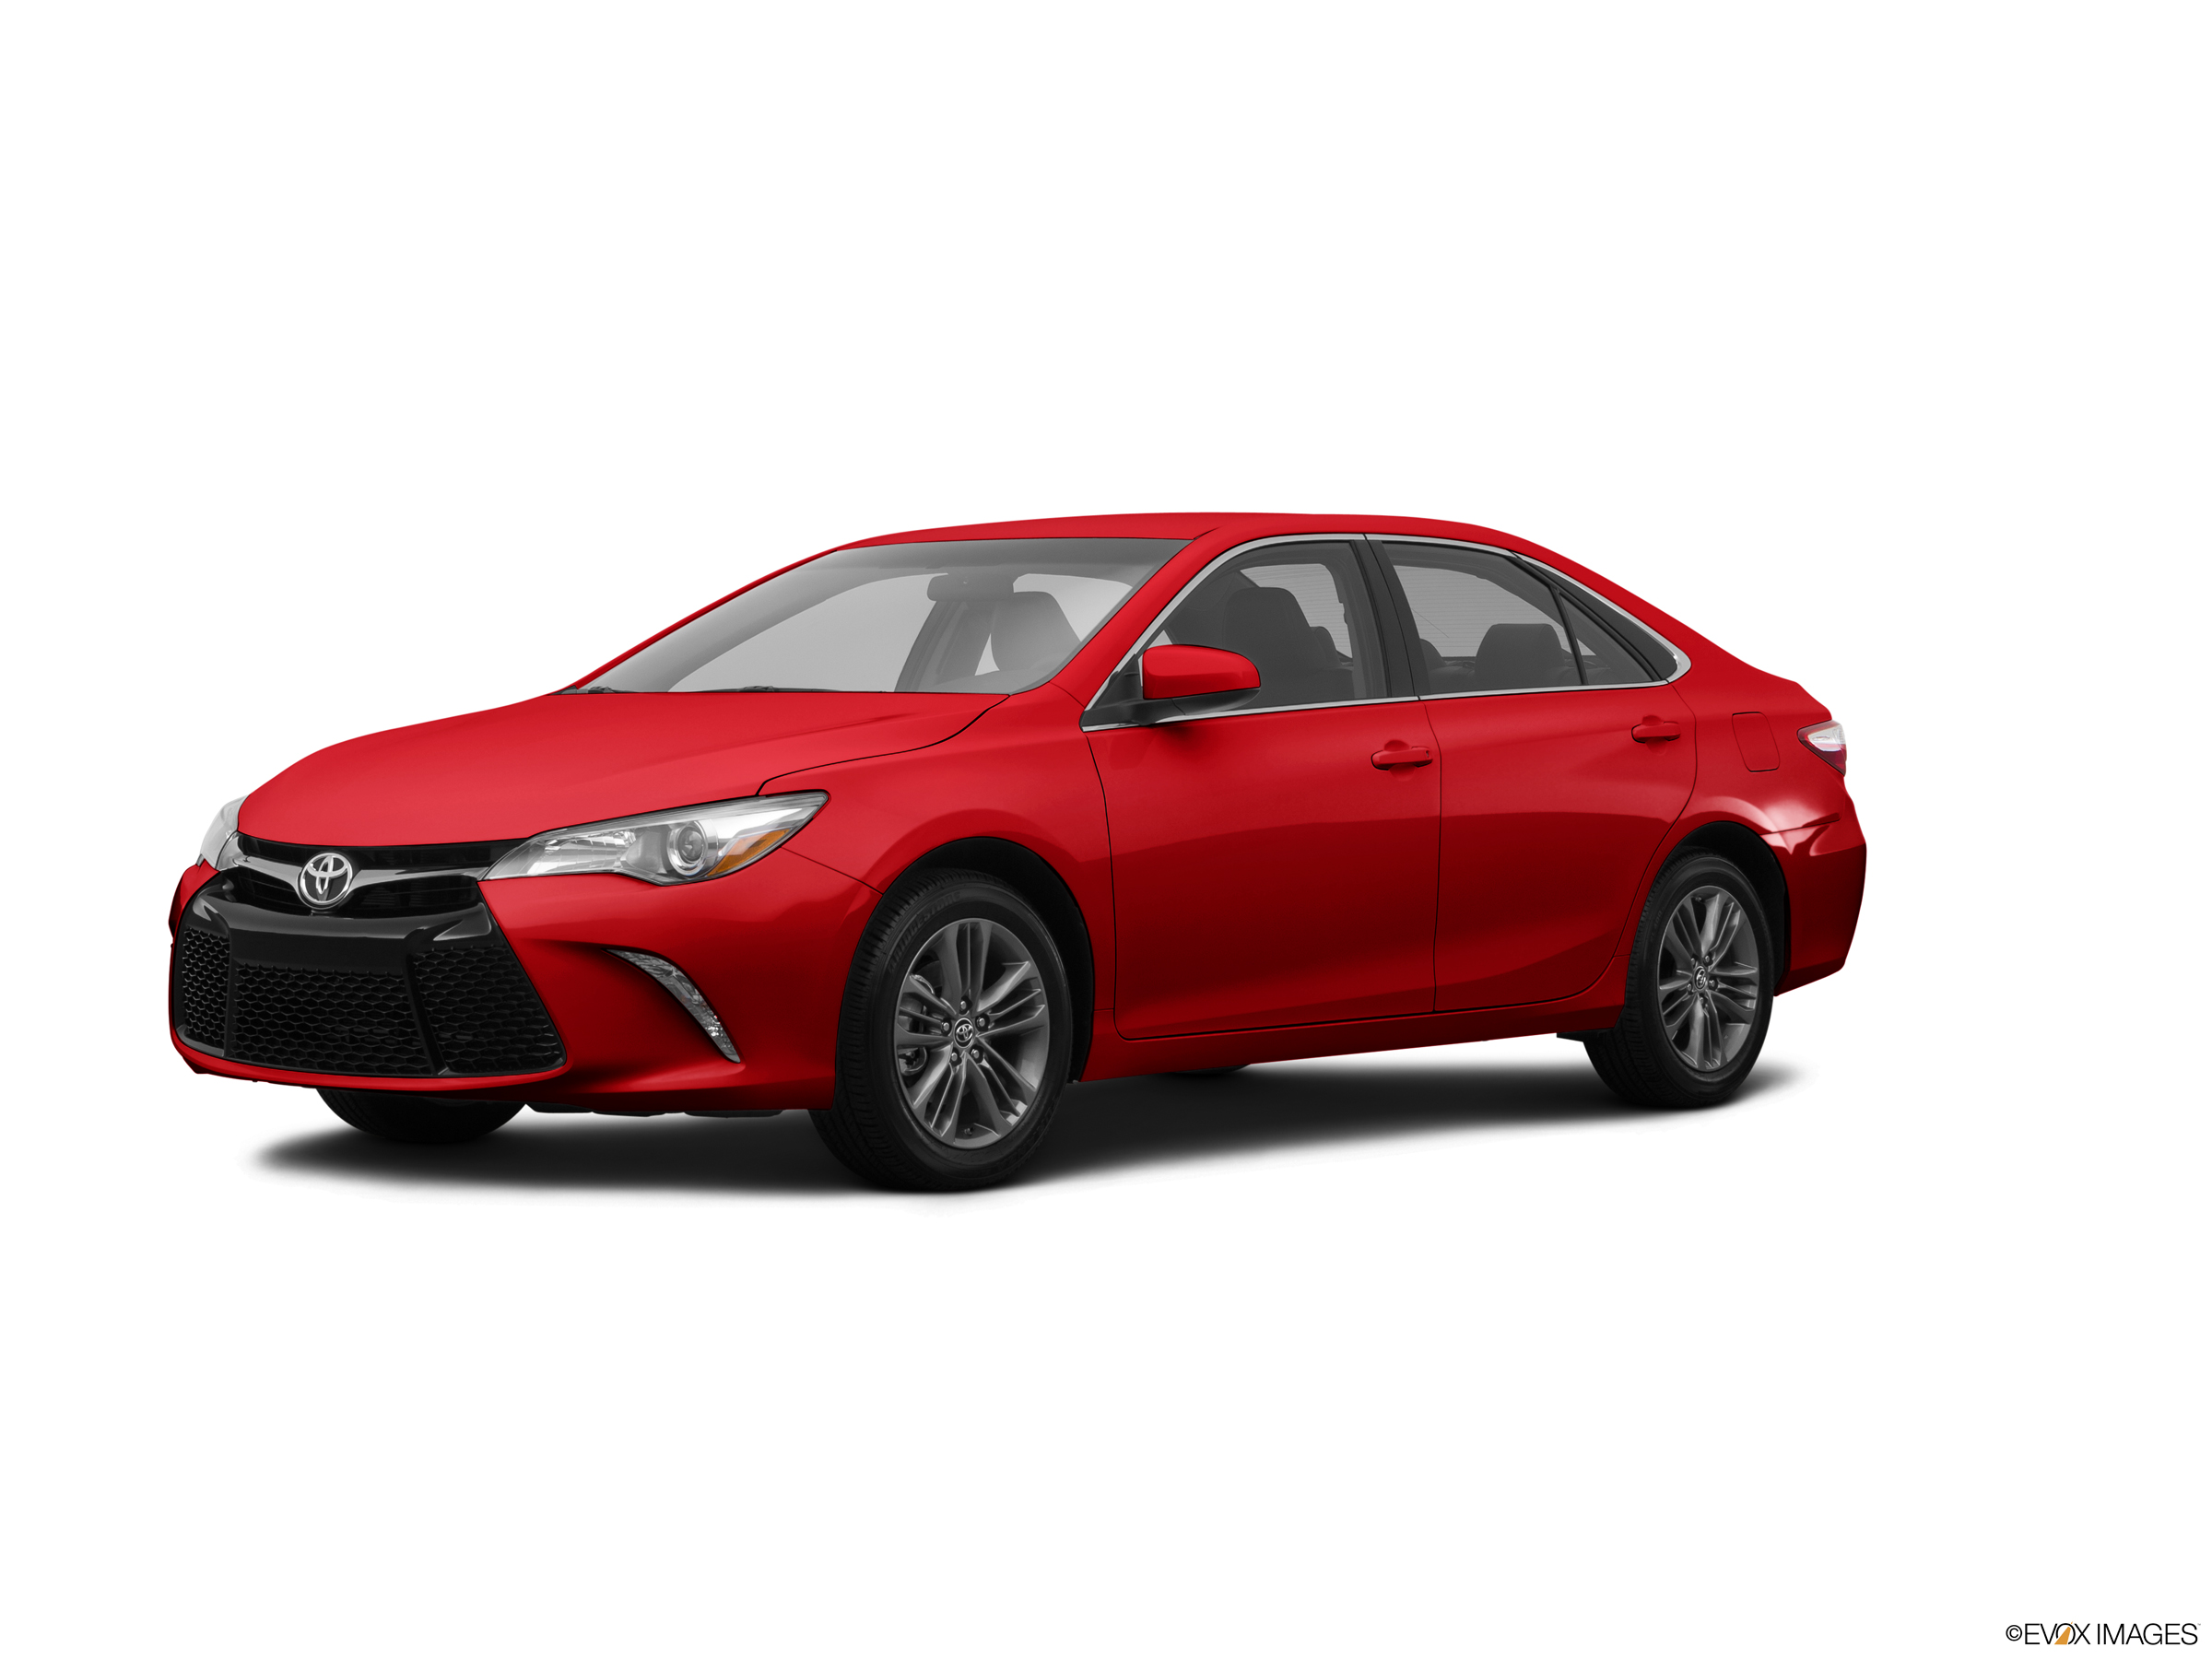 Camry Le Vs Se >> 2015-toyota-camry-ruby-red-pearl - Limbaugh Toyota Reviews ...